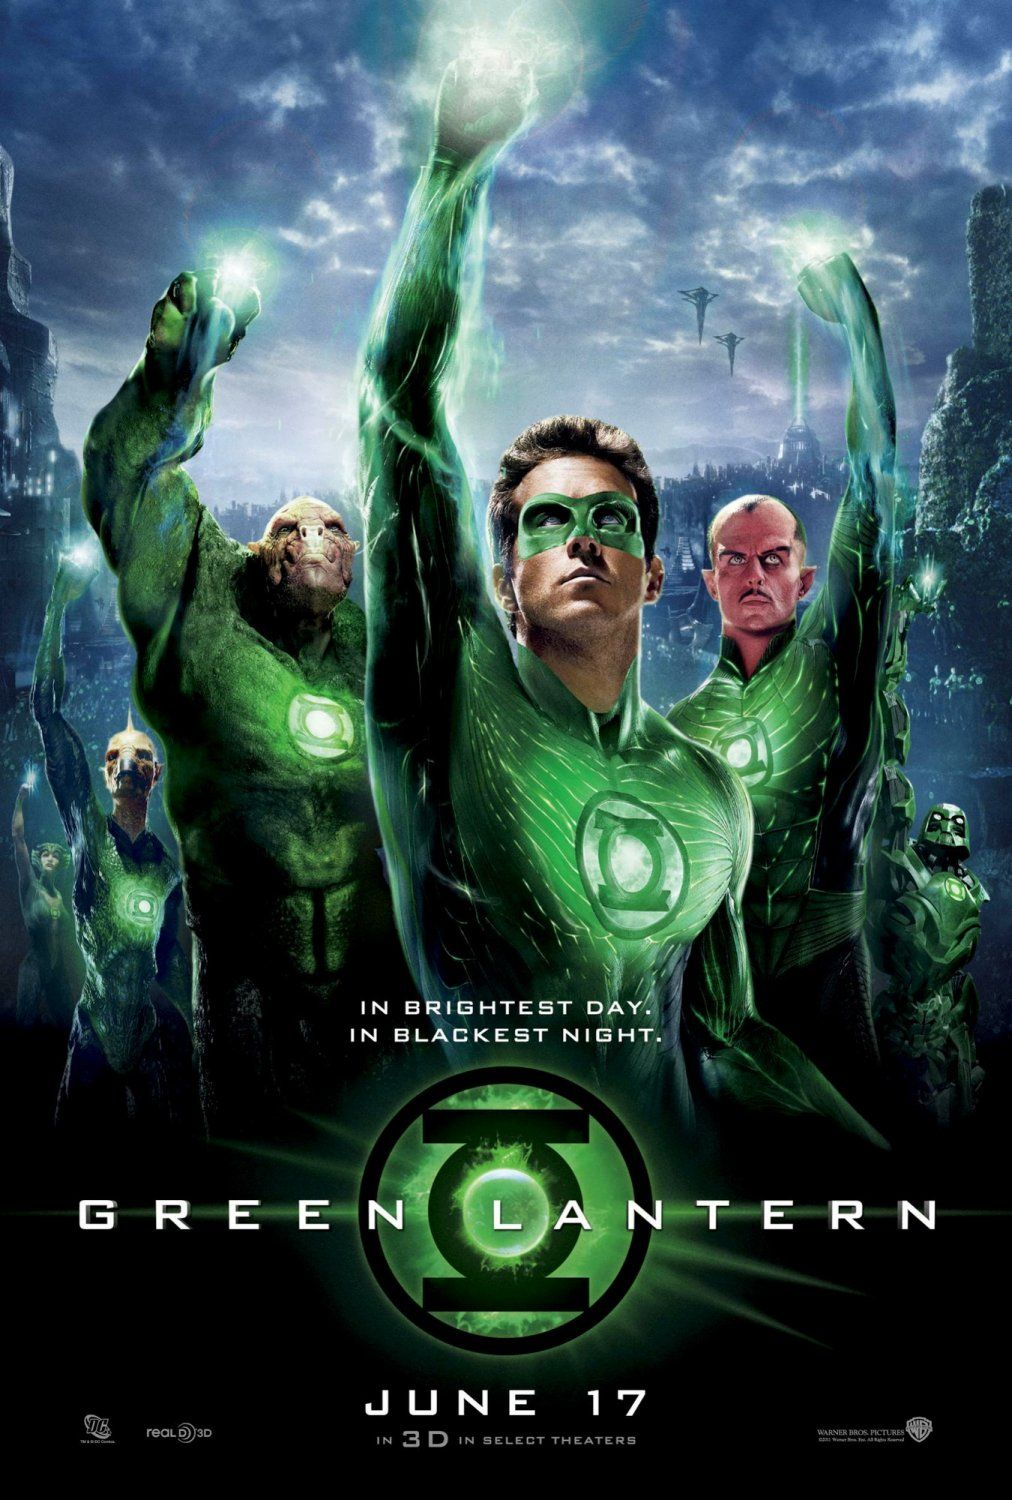 who plays green lantern in the movie